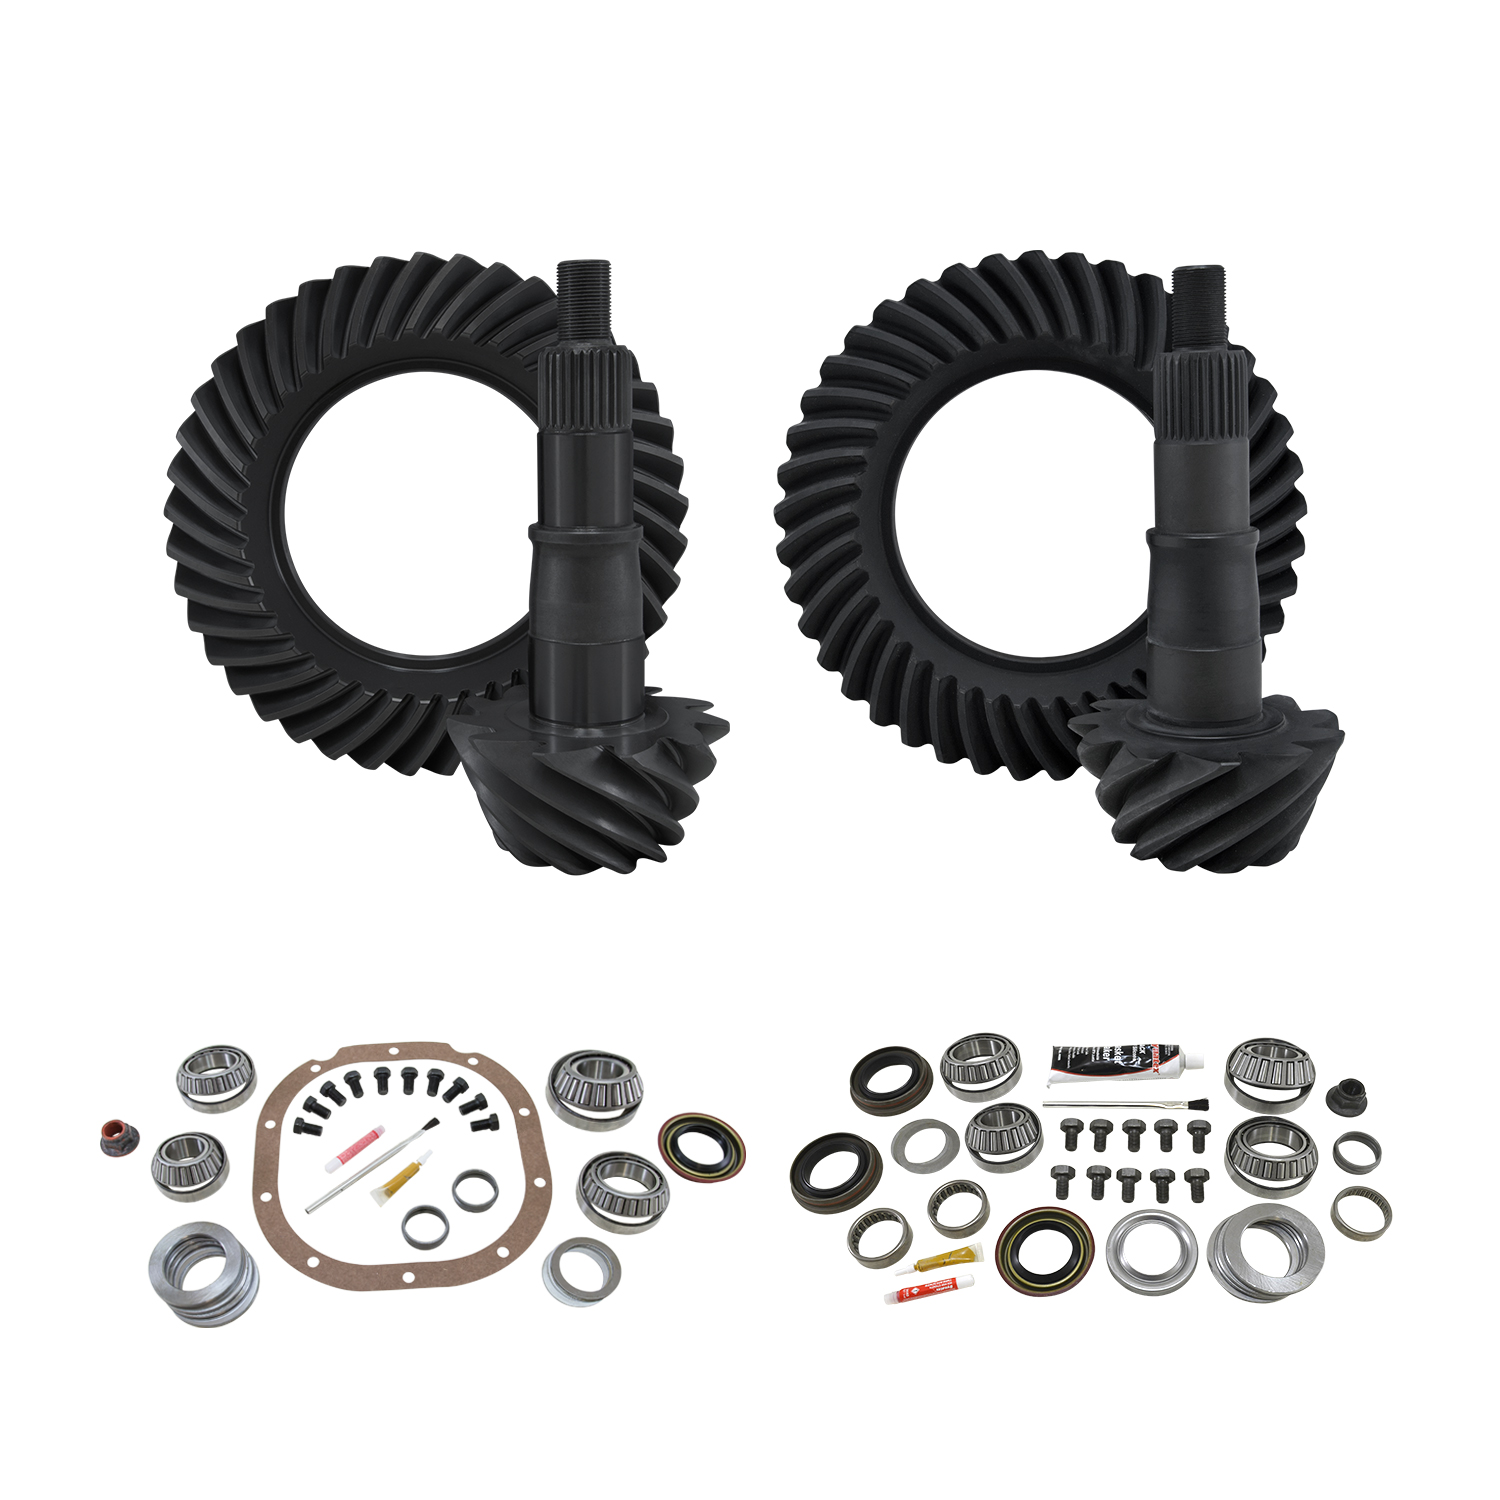 YGK118 - Yukon Complete Gear and Kit Pakage for Various Ford F150 with 8.8